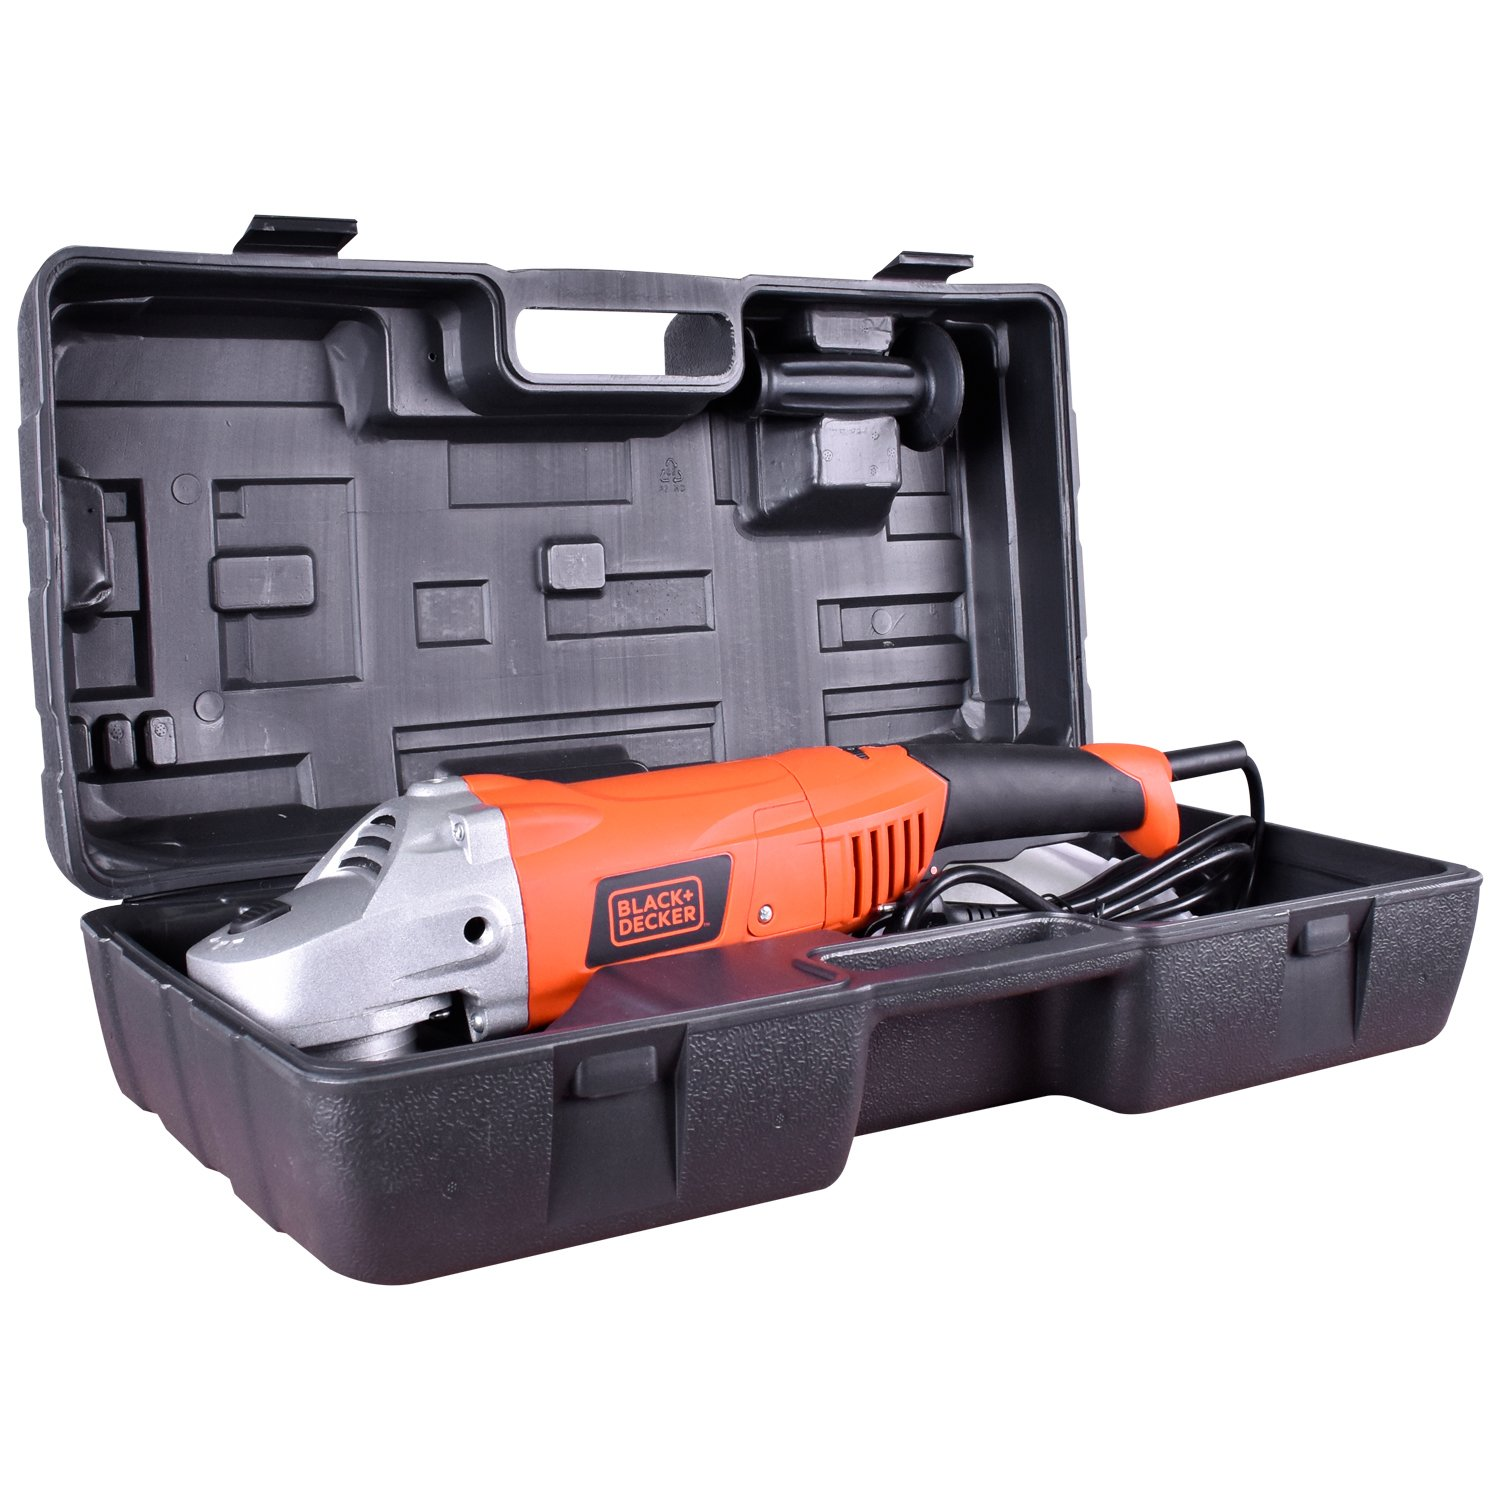 "Politriz Angular 7"" 1300W WP1500 Black&Decker - 110V"